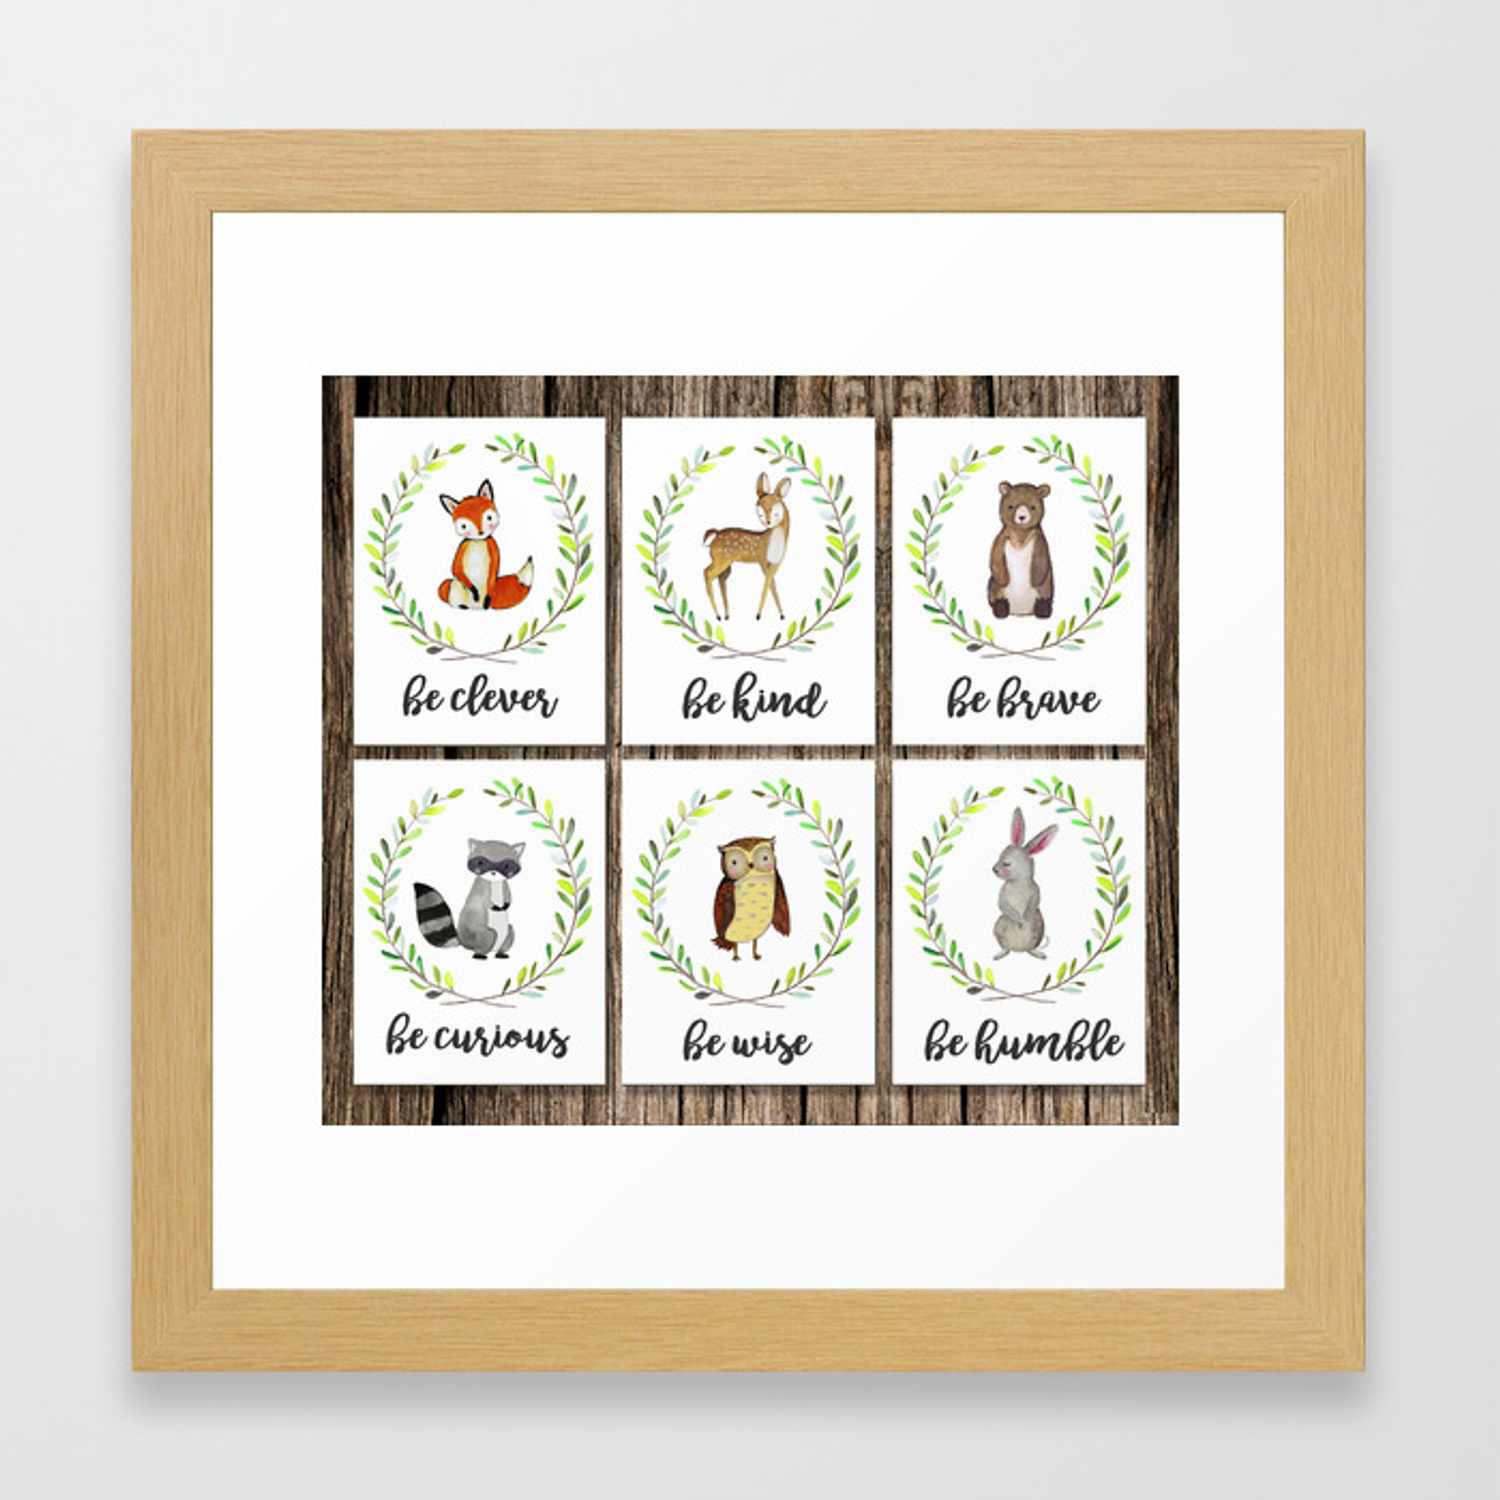 Woodland Creature Animal Nursery Fox Deer Rac Owl Bunny Rabbit Bear Baby Art Decor Print Kind Framed